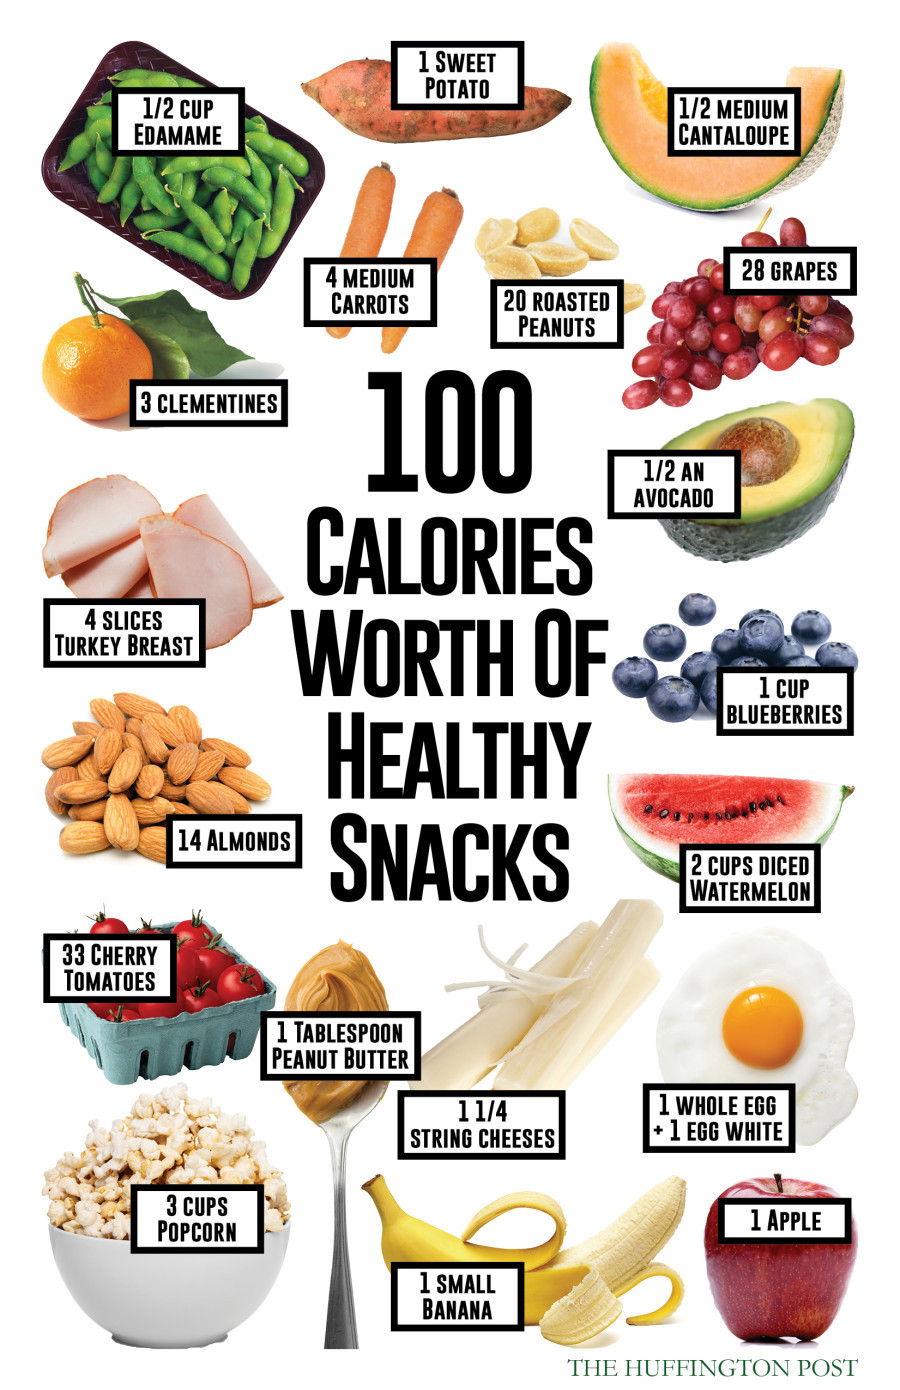 Healthy Snacks with Calories the 20 Best Ideas for Here S What 100 Calories Worth Healthy Snacks Will Get